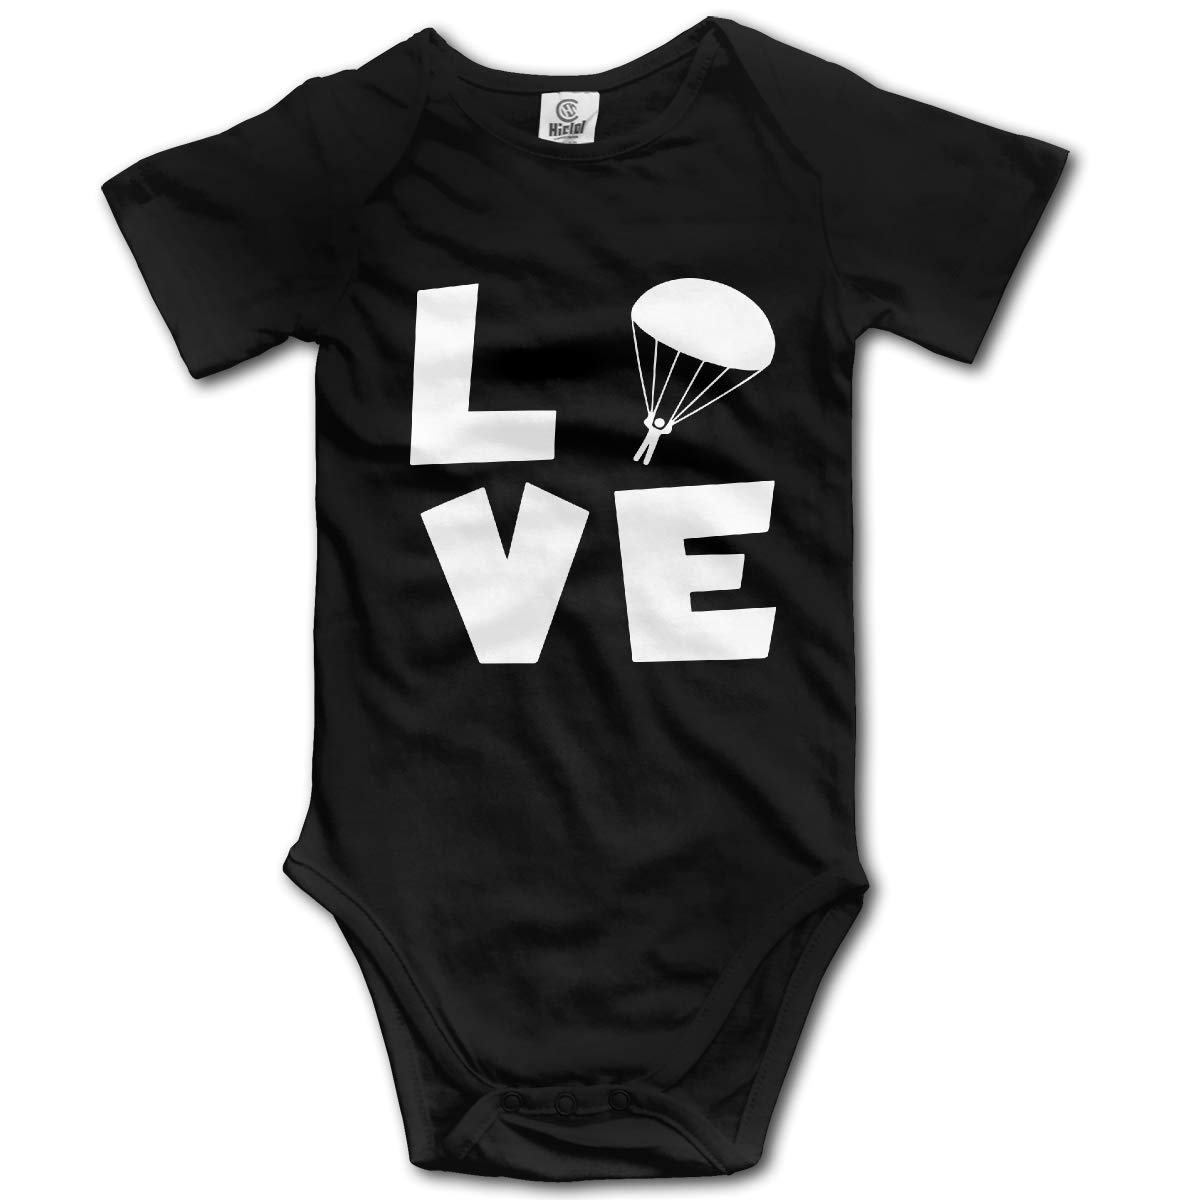 Toddler Skydiving Love Short Sleeve Climbing Clothes Playsuit Suit 6-24 Months